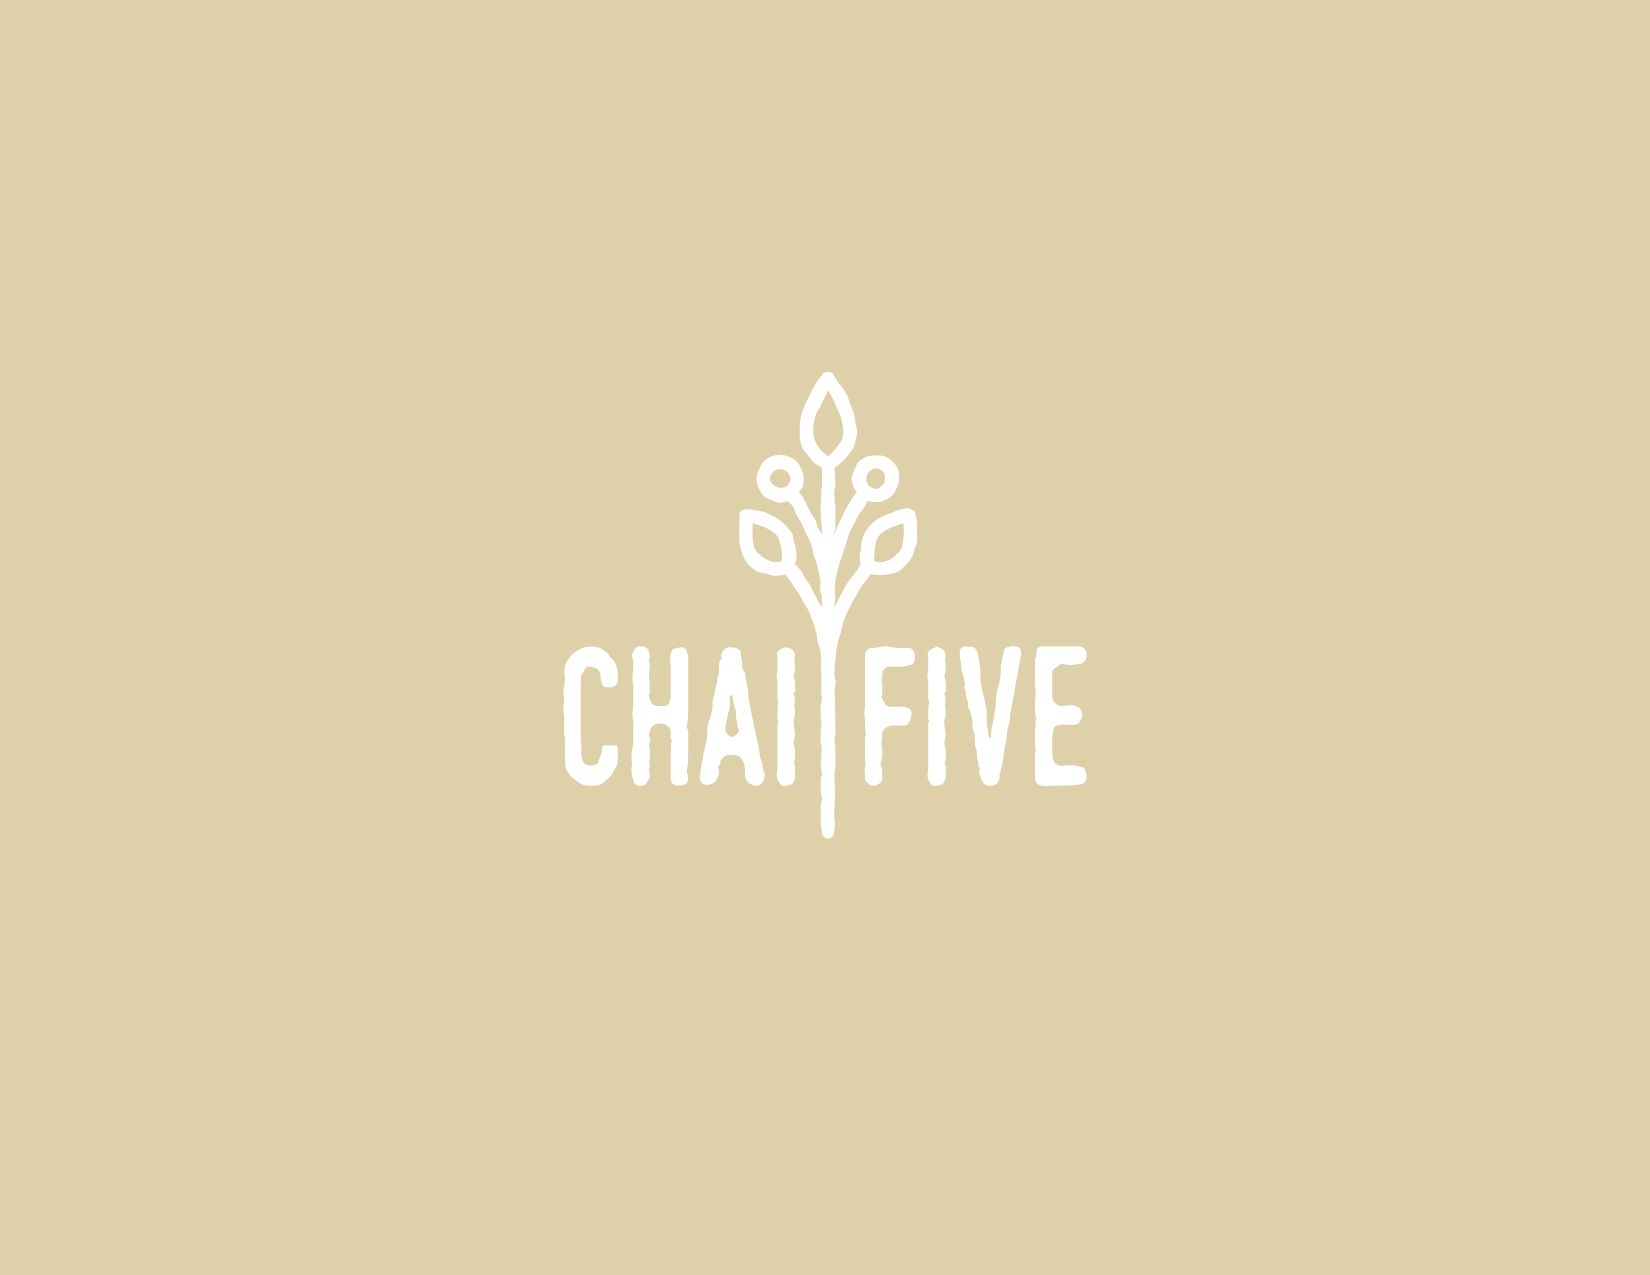 CREATE YOUR OWN DAILY CHAI RITUAL TODAY. -